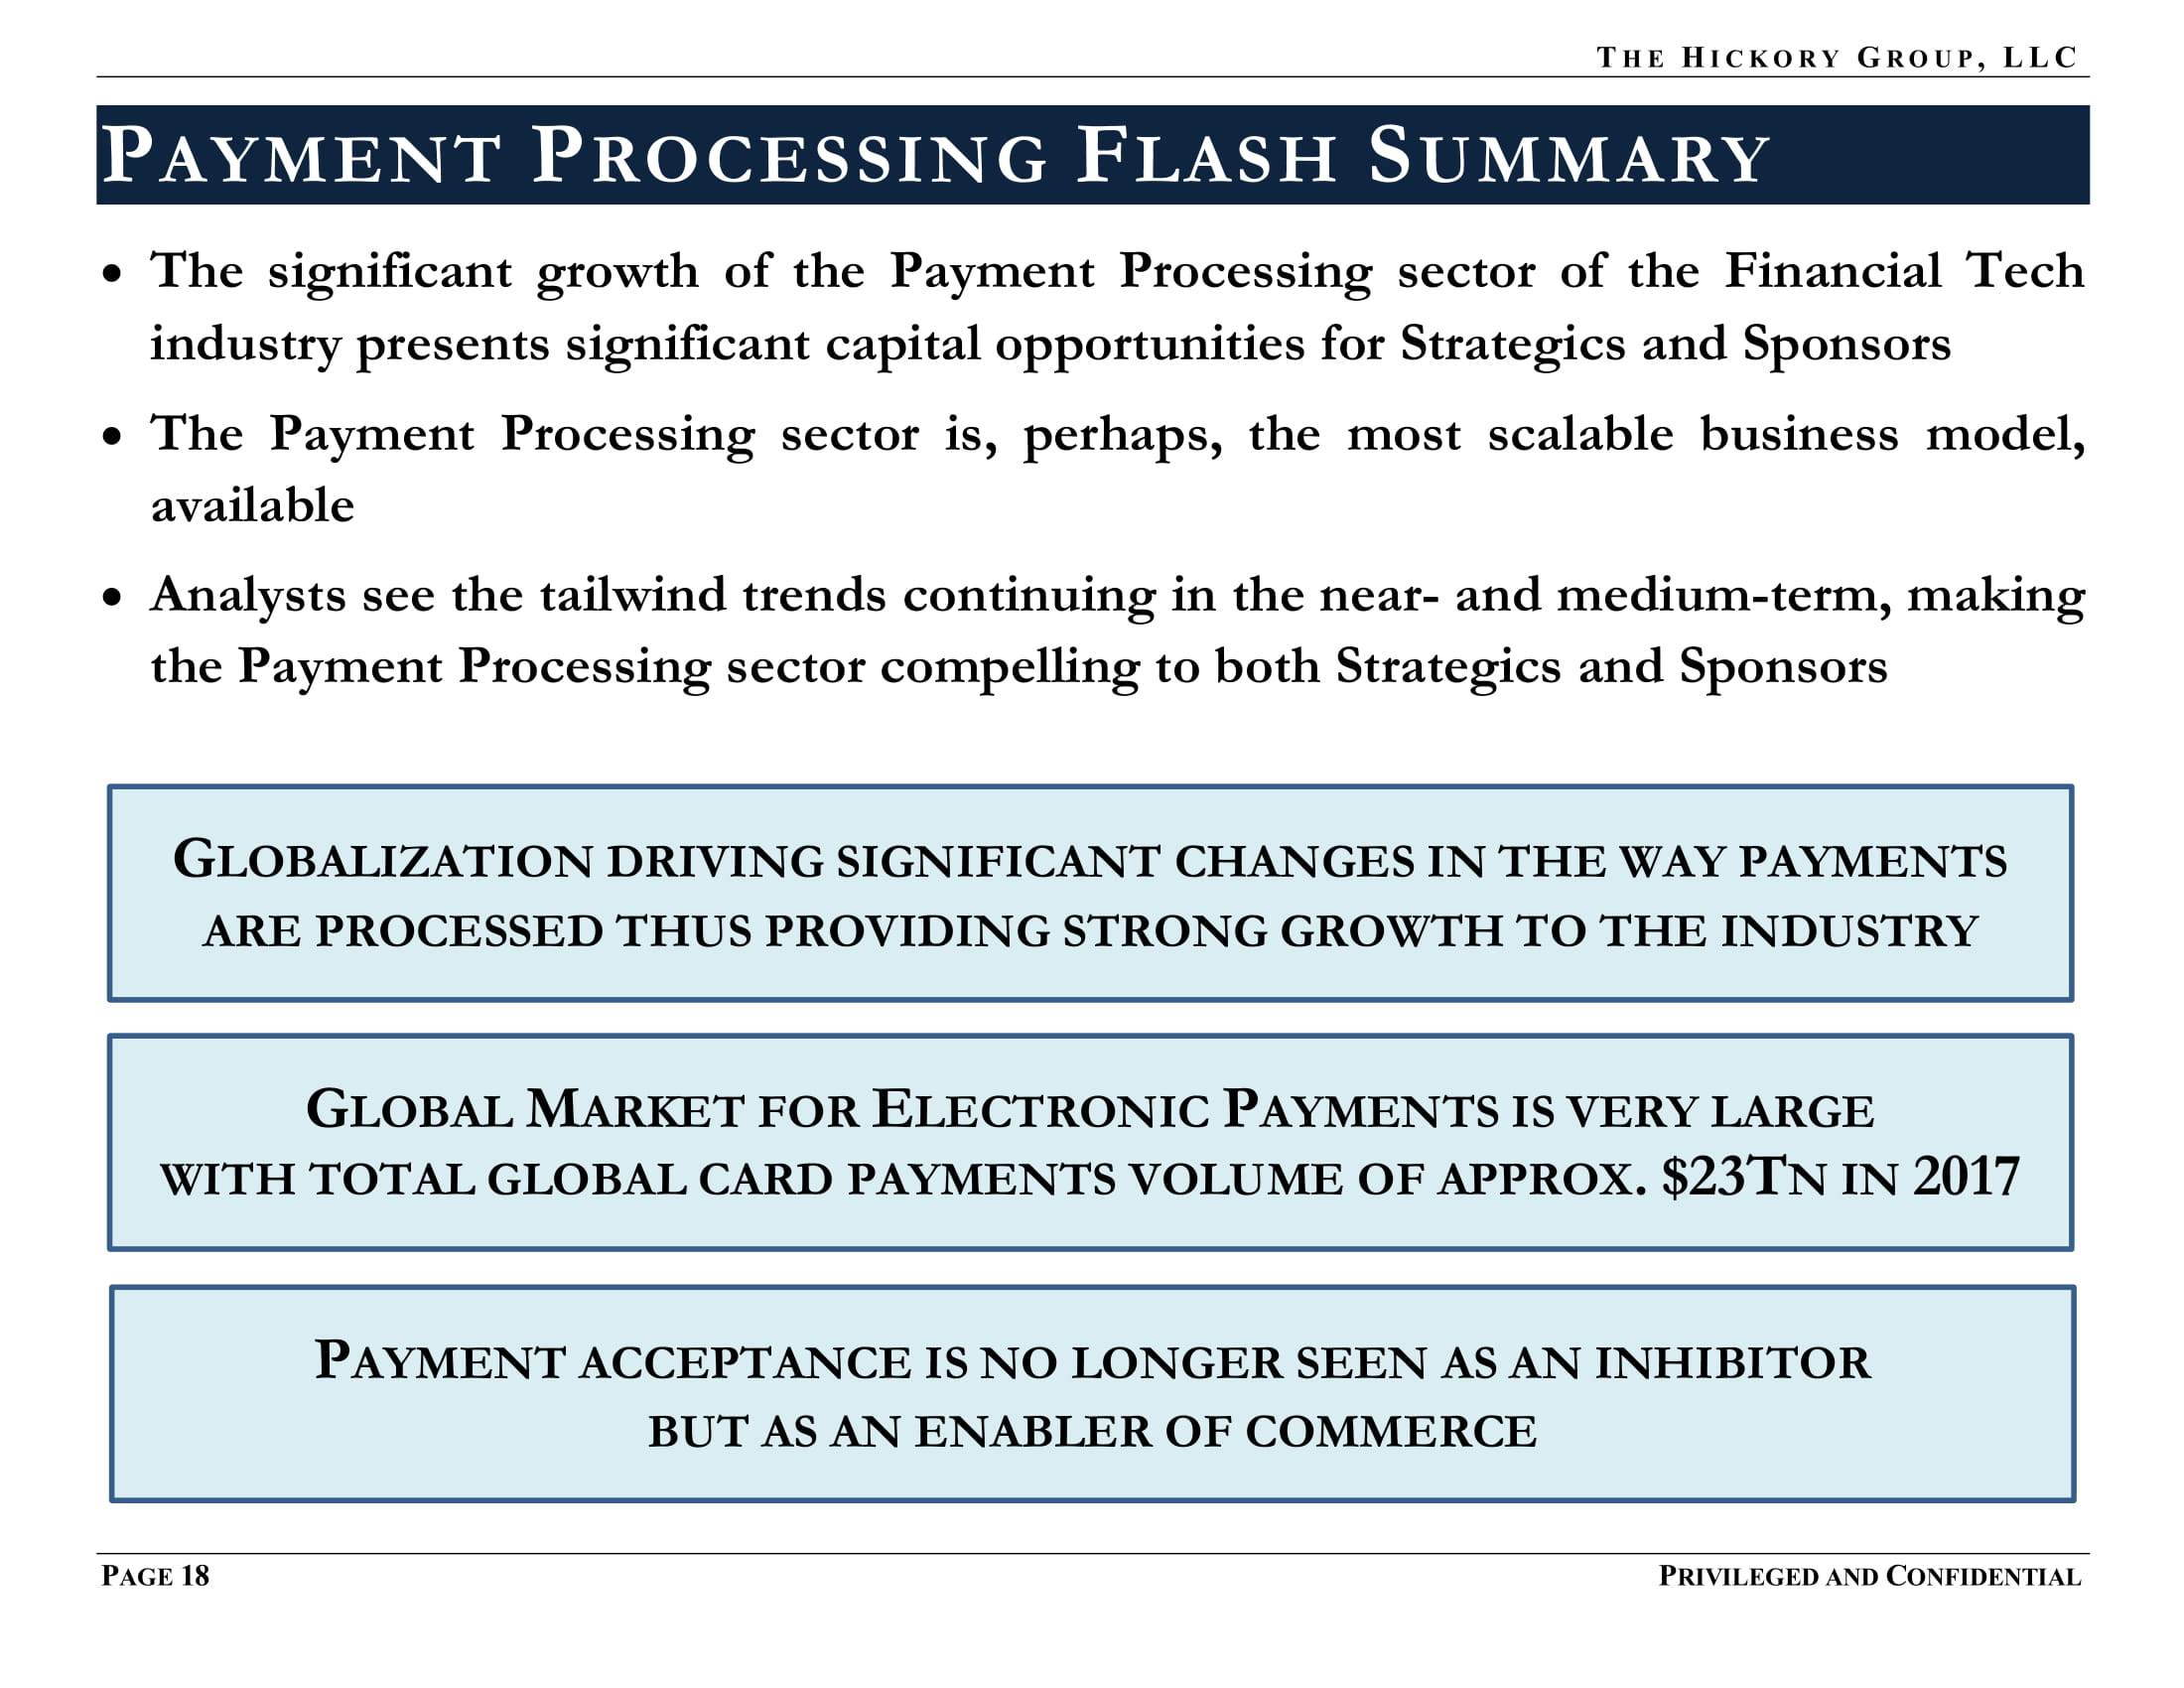 FINAL_THG FinTech Industry - Payment Processing Sector Flash Report (27 March 2019) Privileged & Confidential-26.jpg